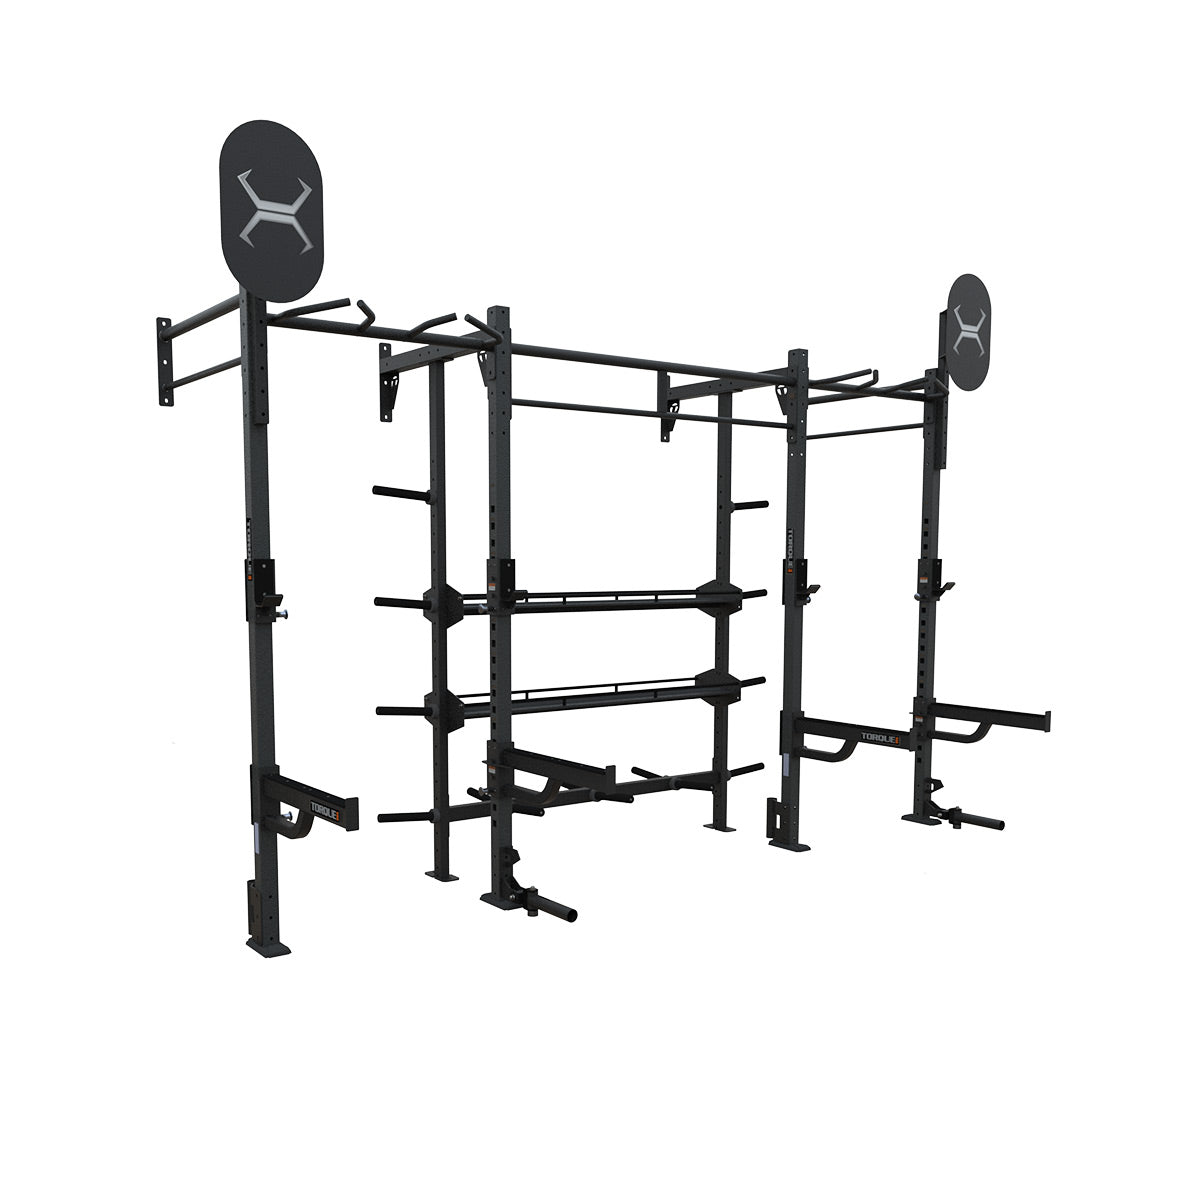 14 X 4 Storage Wall Mount X1 Package Torque Fitness